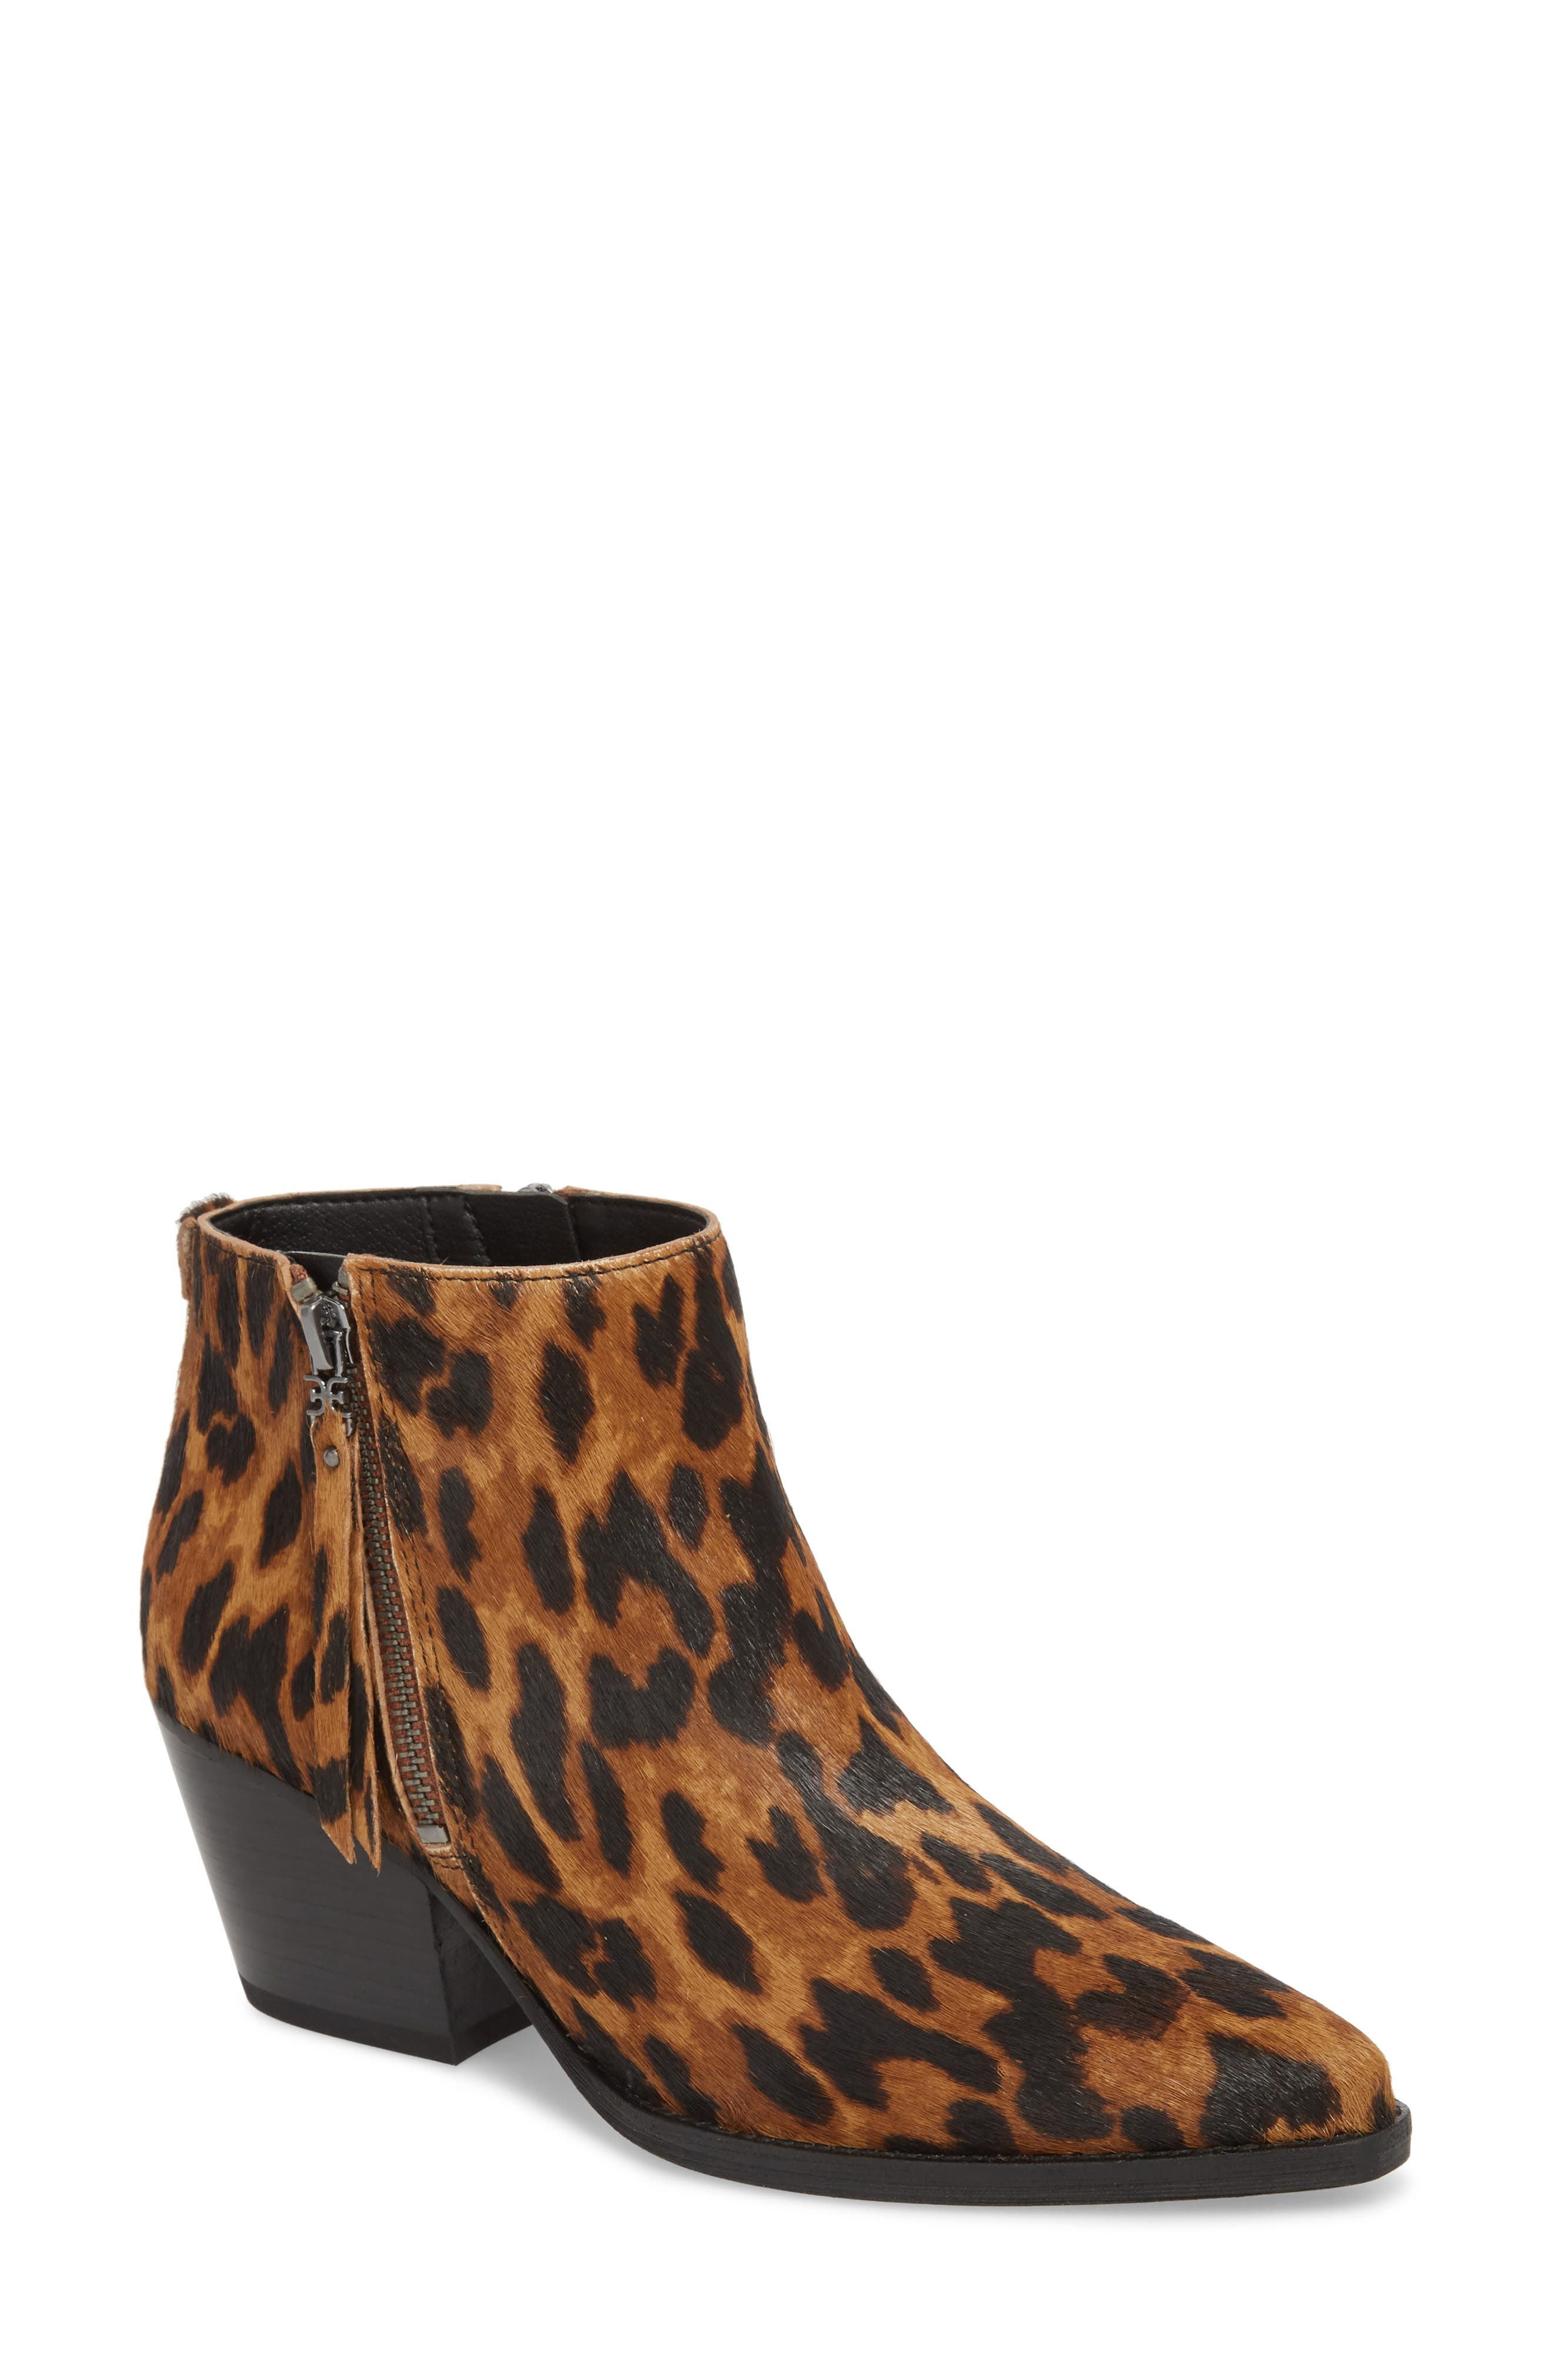 Sam Edelman Walden Genuine Calf Hair Bootie